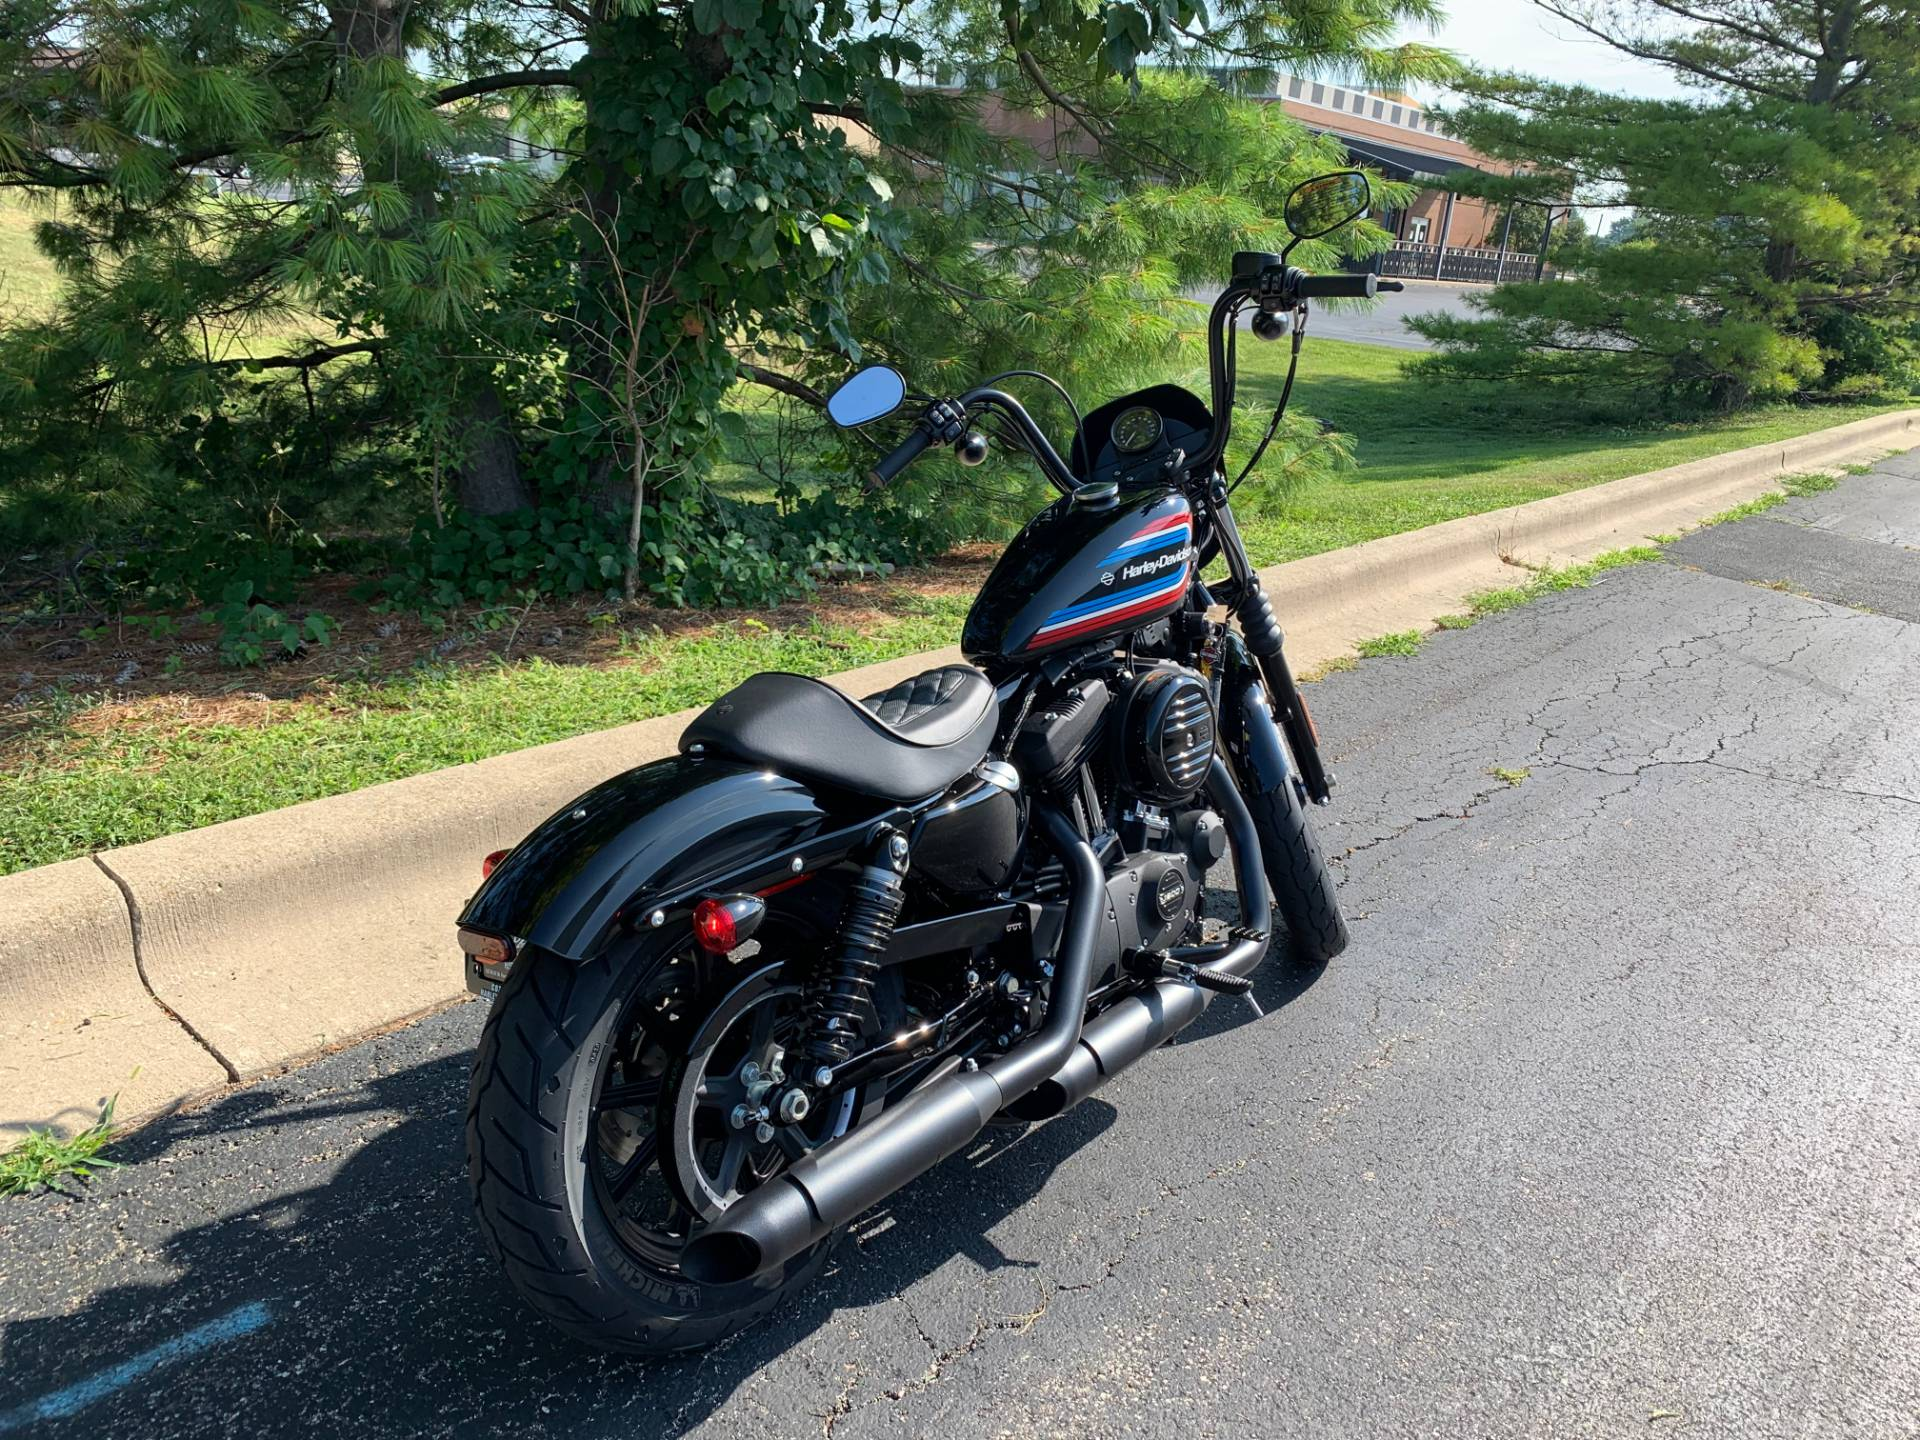 2020 Harley-Davidson Iron 1200 in Forsyth, Illinois - Photo 3